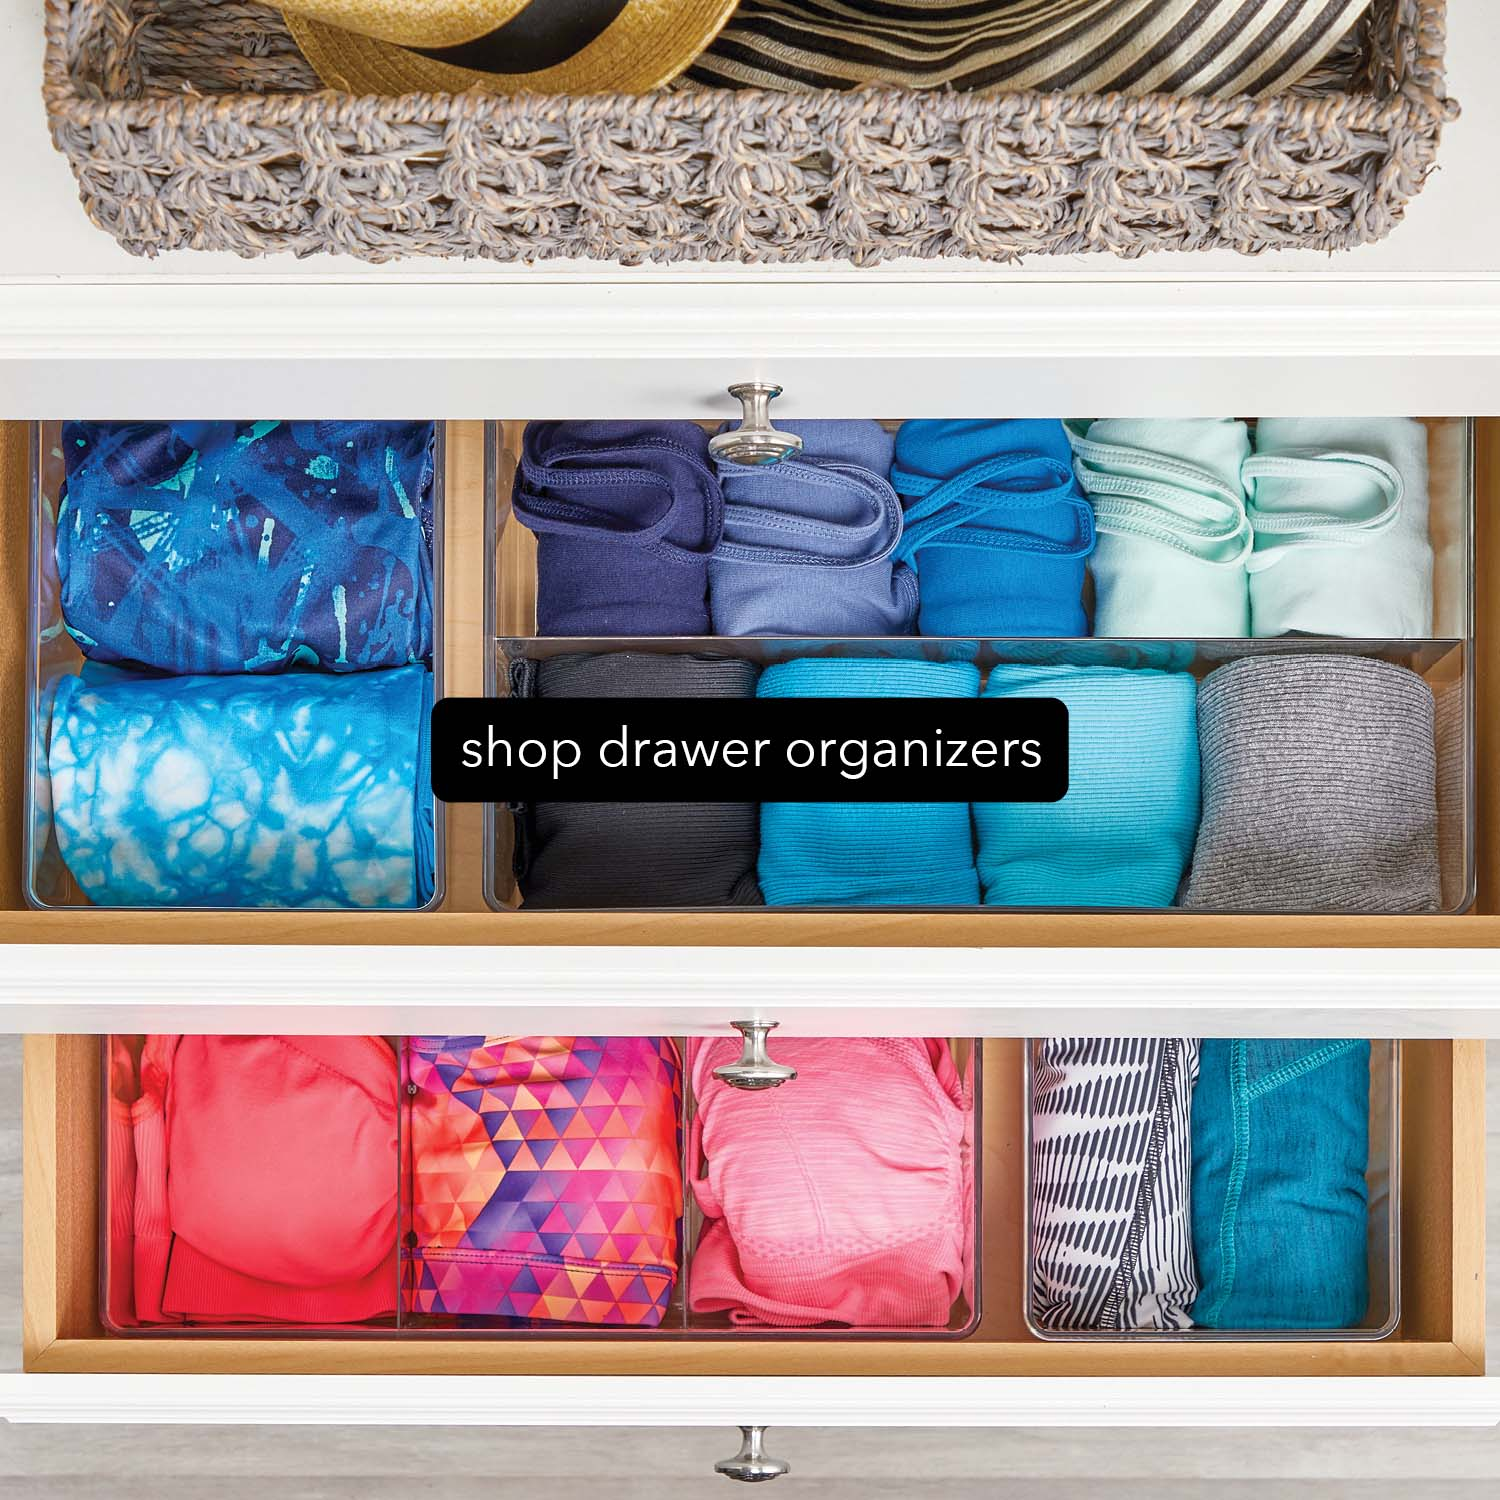 plastic drawer organizers with camisoles